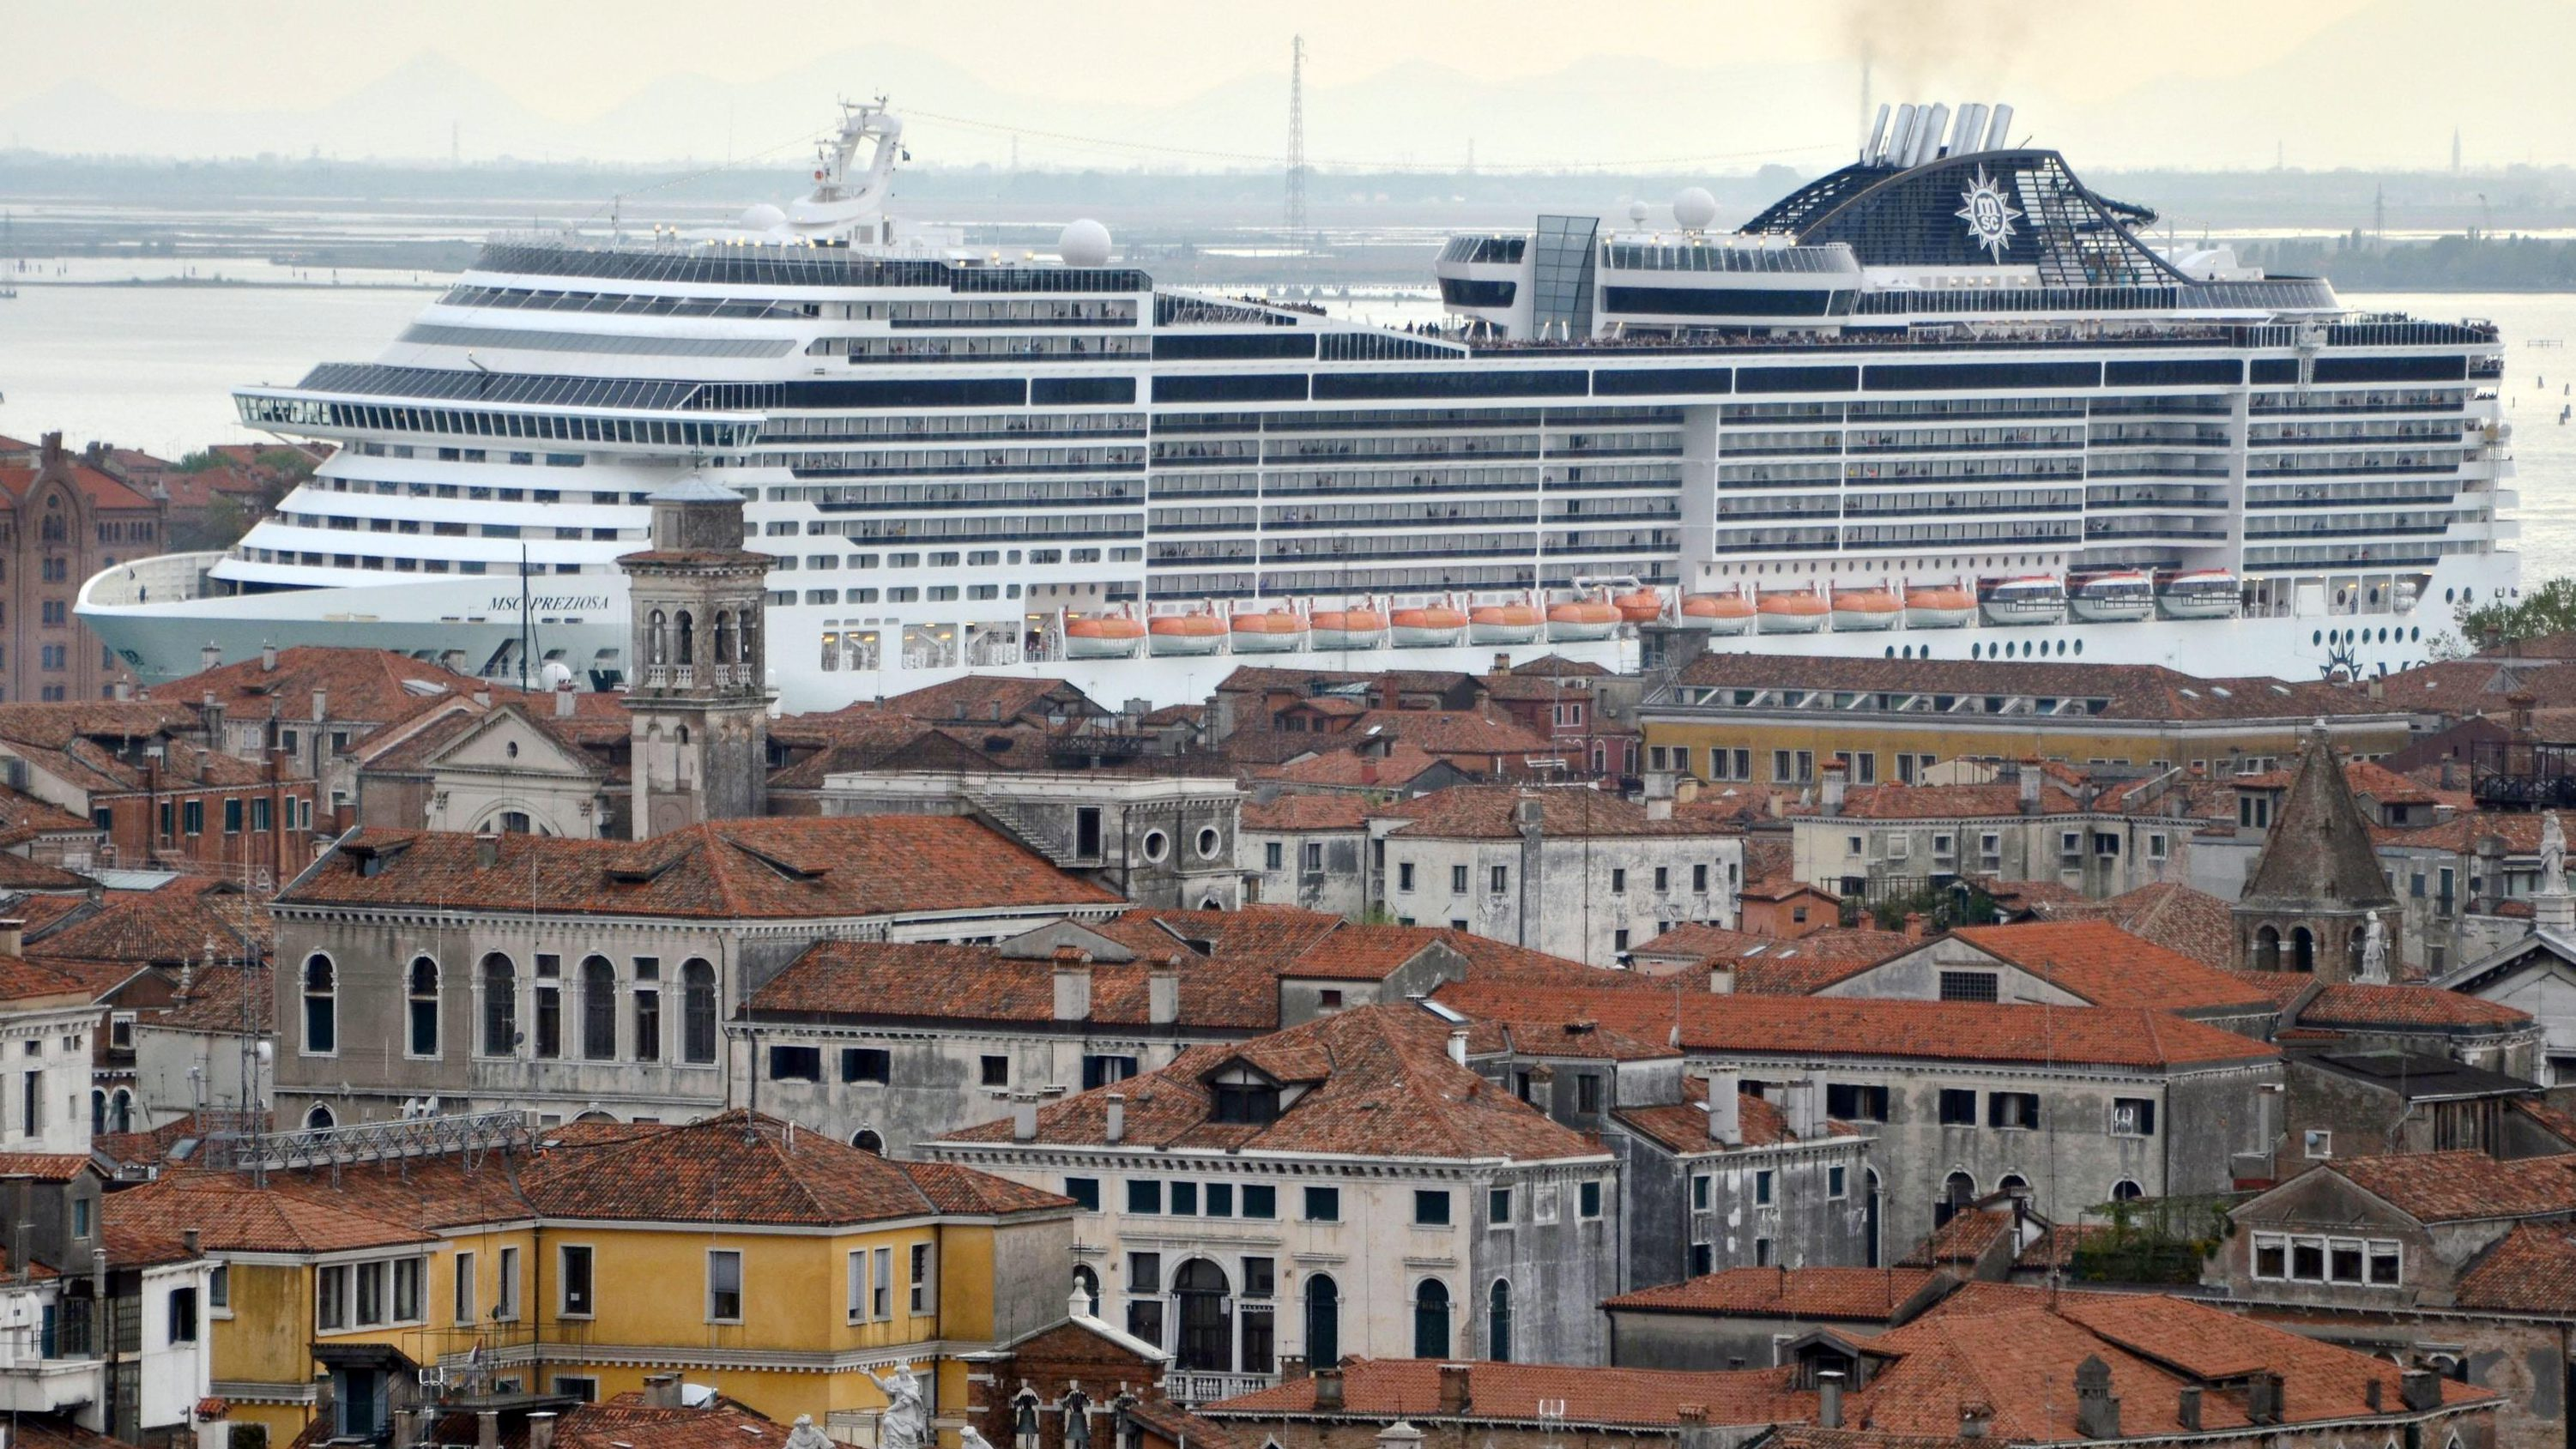 A file photo dated 05 April 2014 shows the cruise ship 'MSC Preziosa' navigating in the Canale della Giudecca, in Venice, Italy. Media reports on 16 July 2016, that the UNESCO World Heritage Committee has threatened to put Venice on their list of endangered heritage sites on 14 July 2016, if authorities fail to ban big cruise liner from the lagoon by 2017. The 40th World Heritage Committee meets in Istanbul from 10 to 20 July 2016.